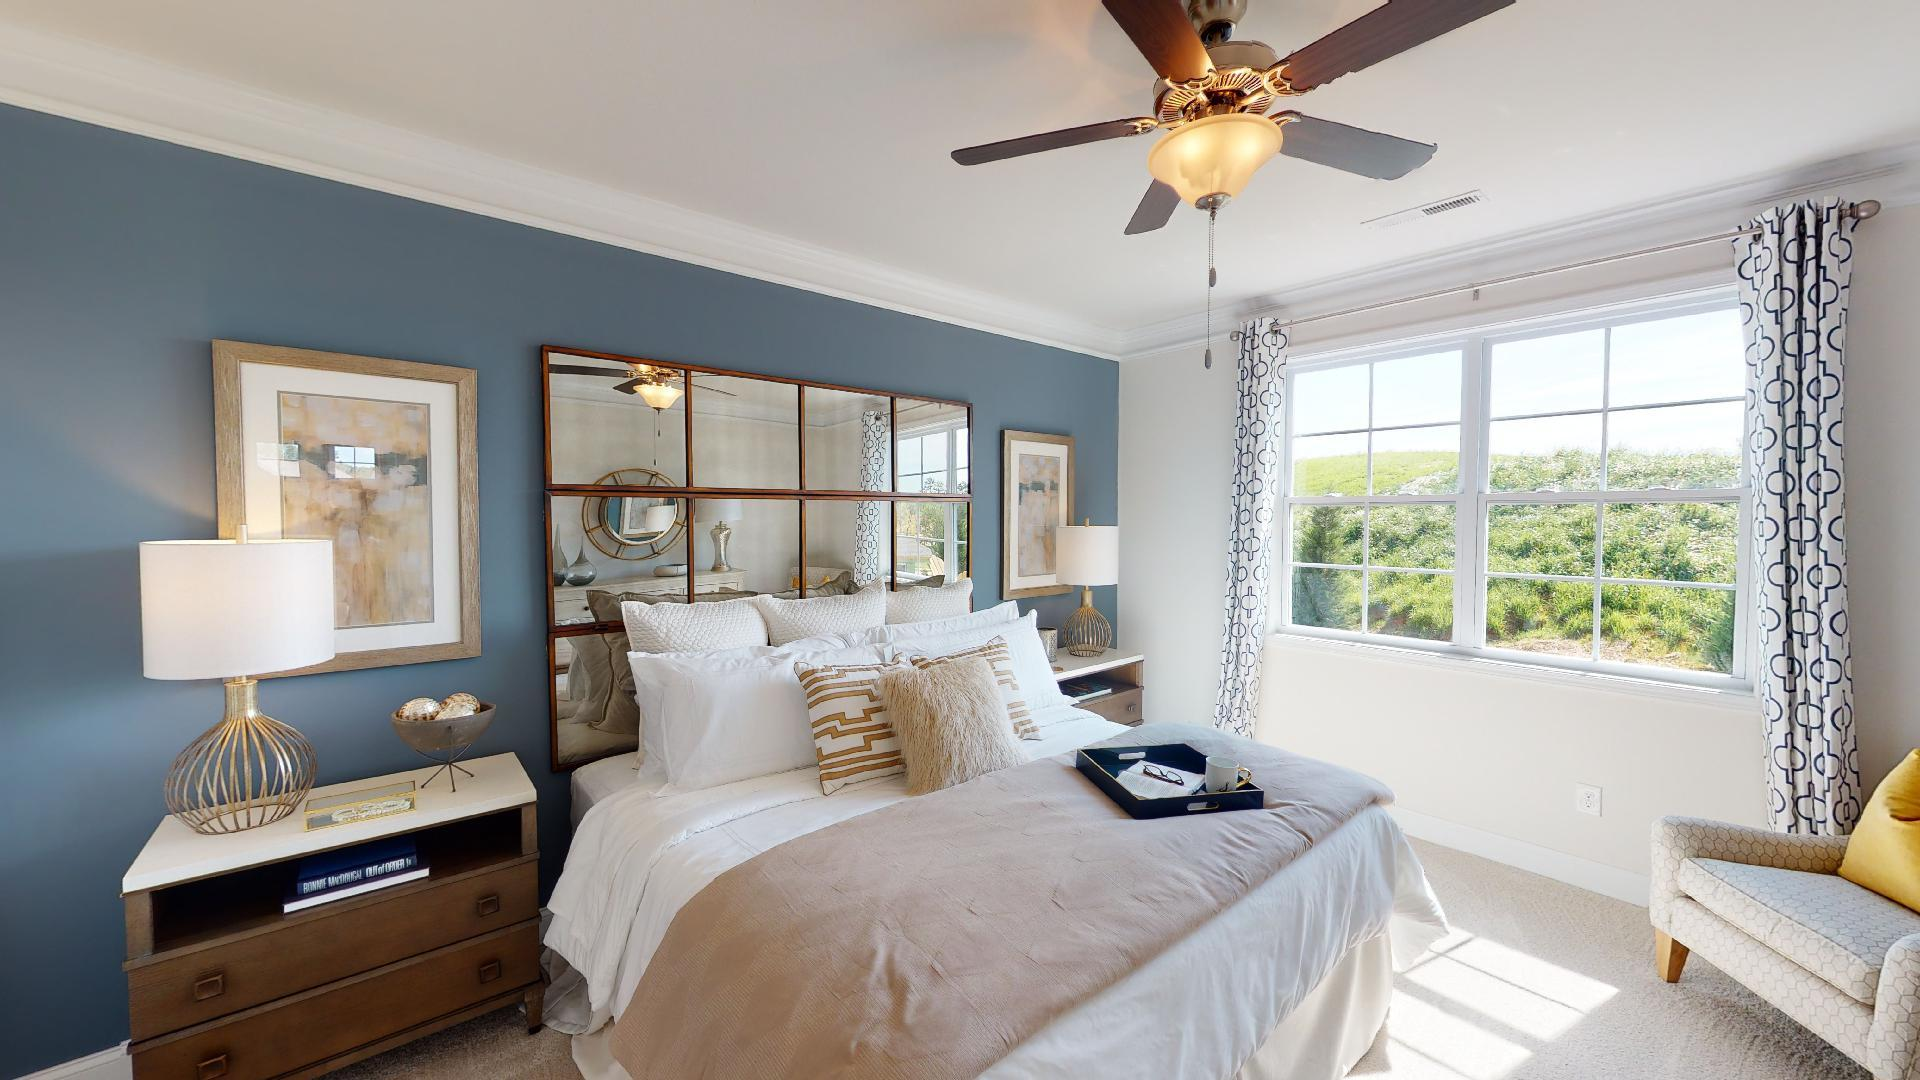 Bedroom featured in the Bristol By D.R. Horton in Hickory, NC